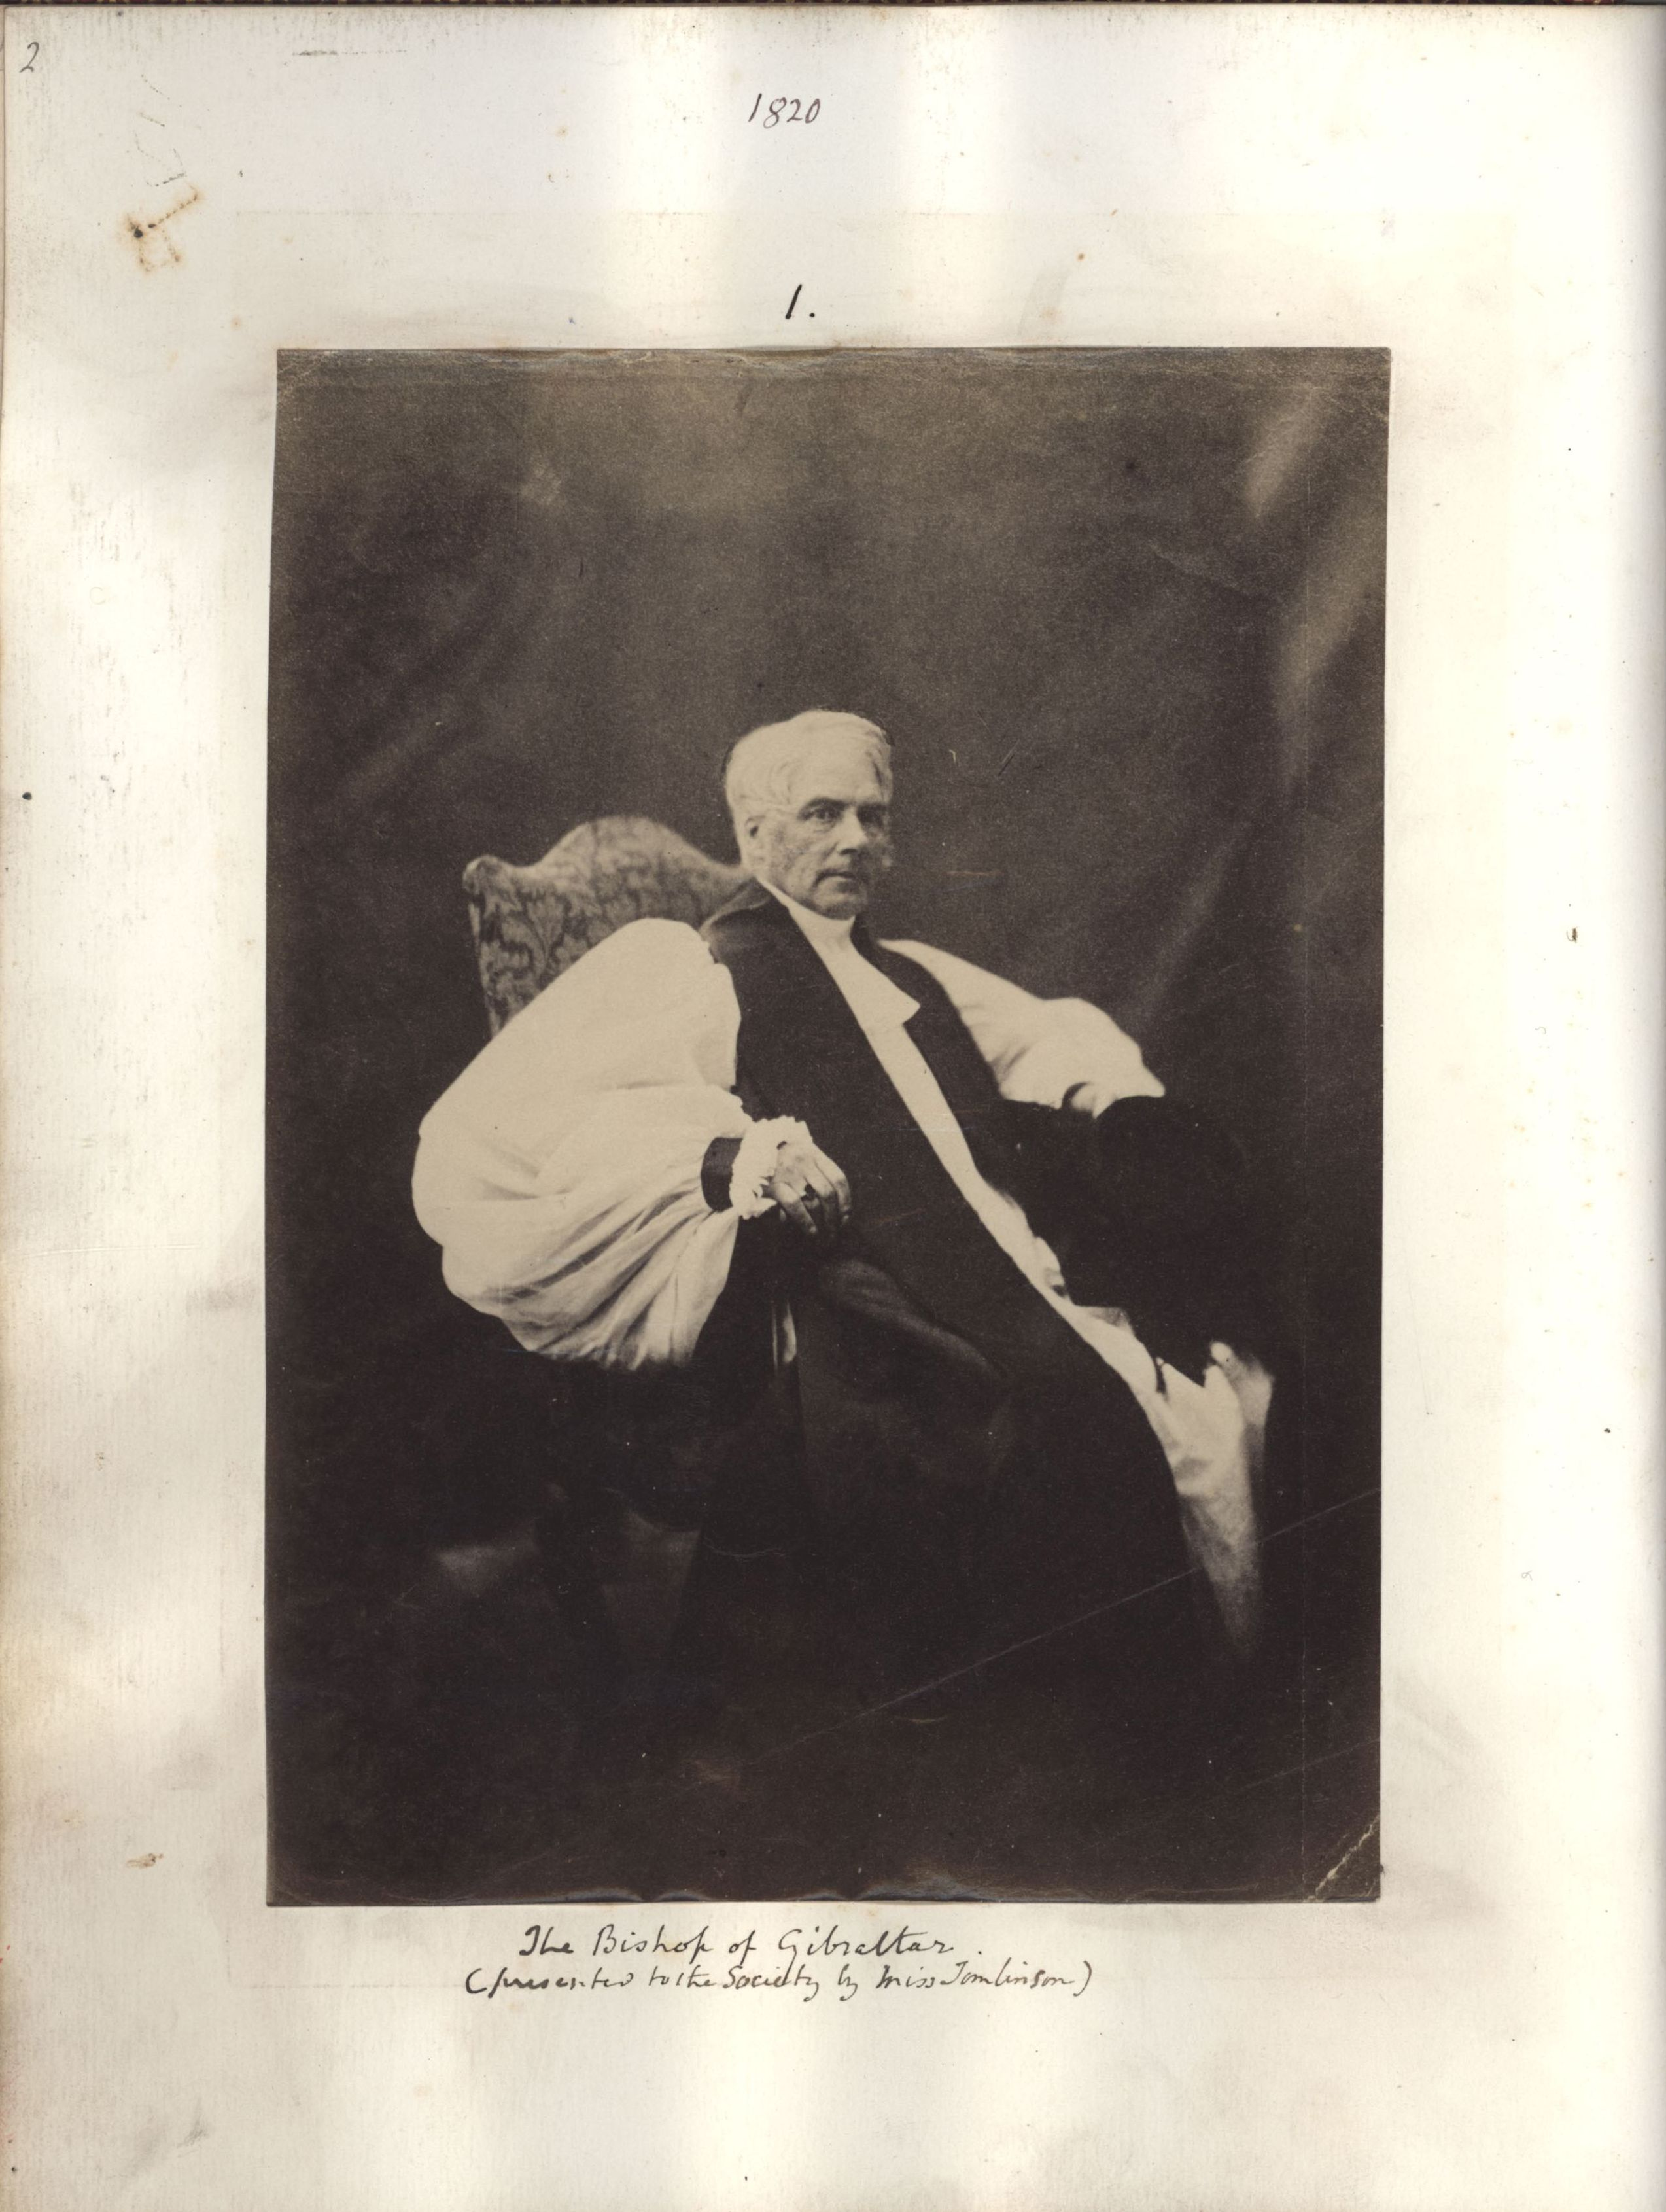 George Thomlinson in the Apostles photo book. [KCAS/39/4/1, p2]